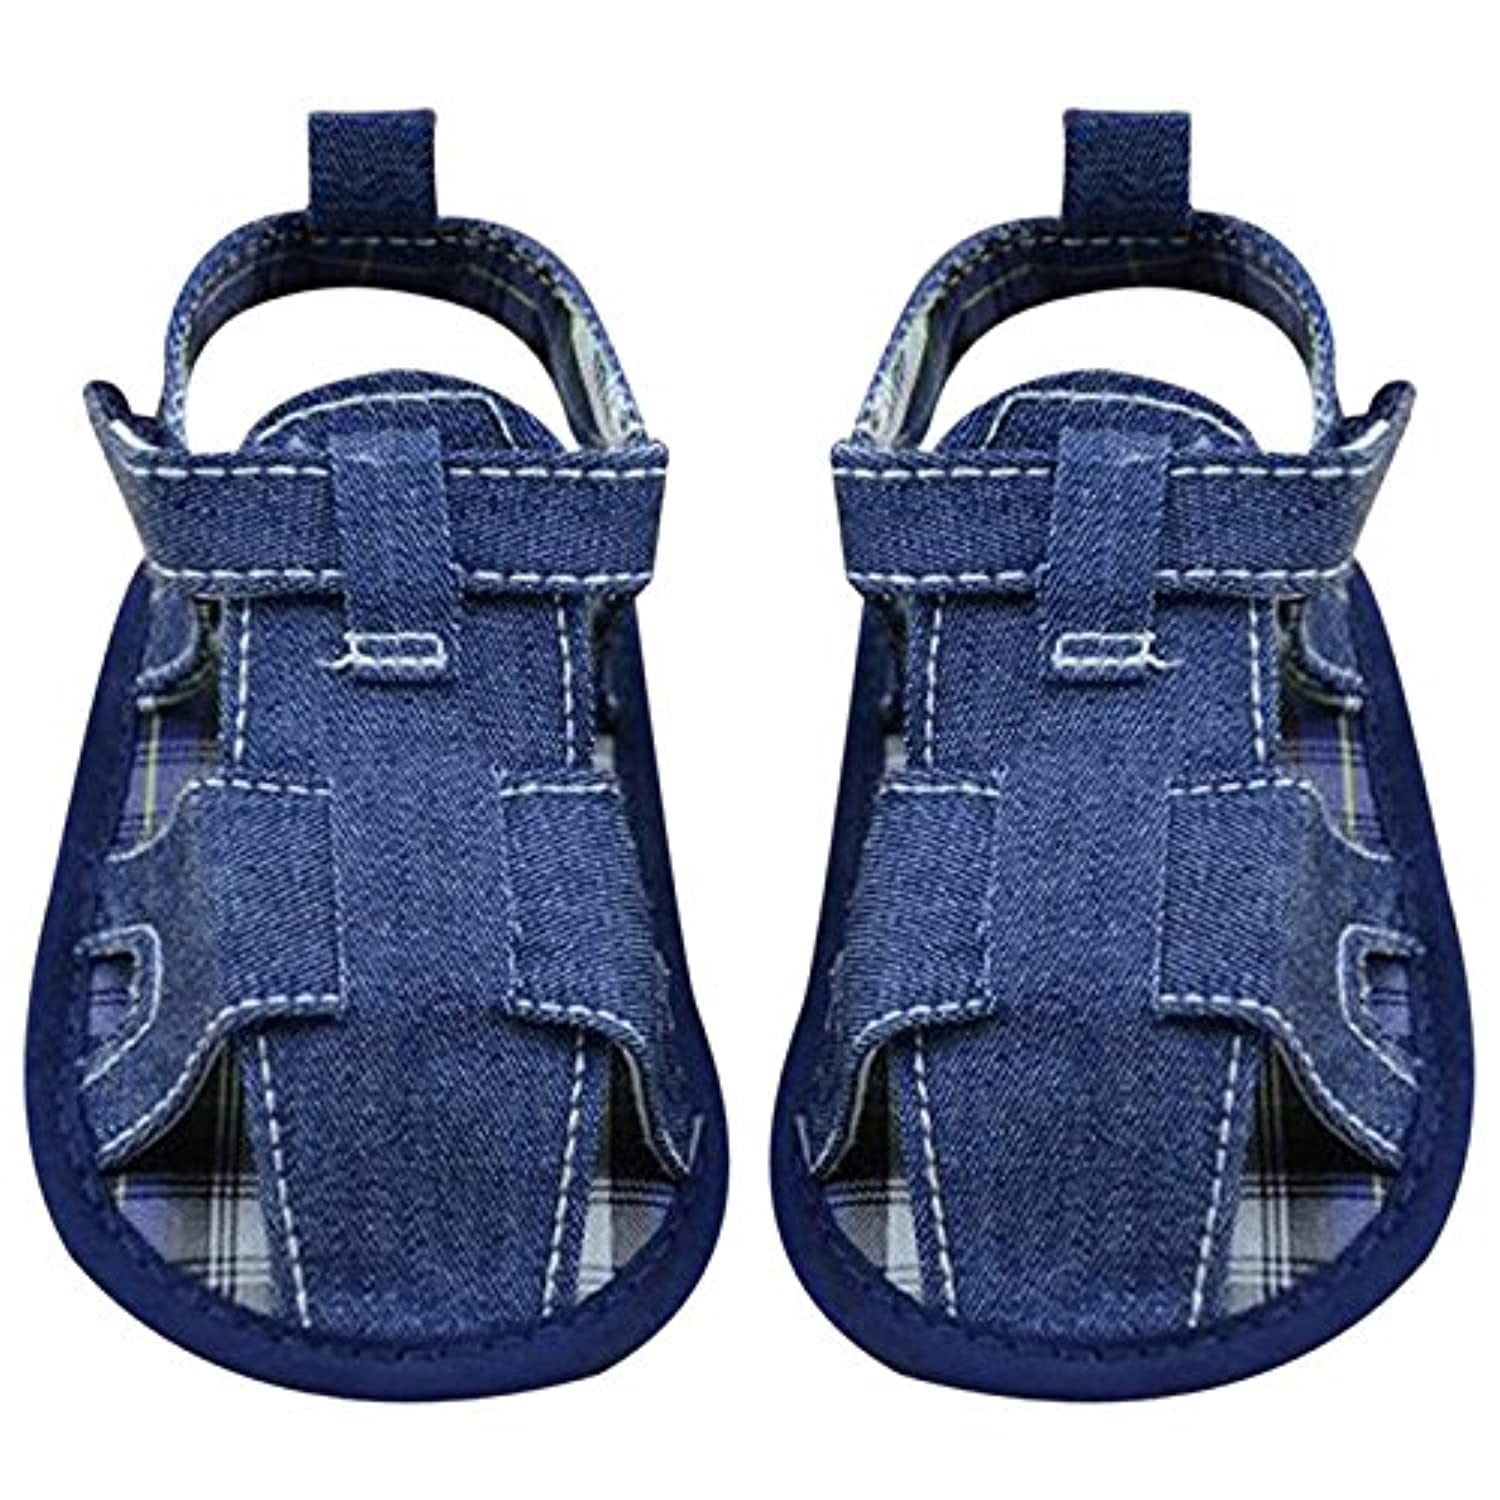 LuxBene(TM)BS#S 0-18M Summer Baby Classic Soft Sole Shoes Boys Cotton Toddler Sandals Blue Jean and White Sandals